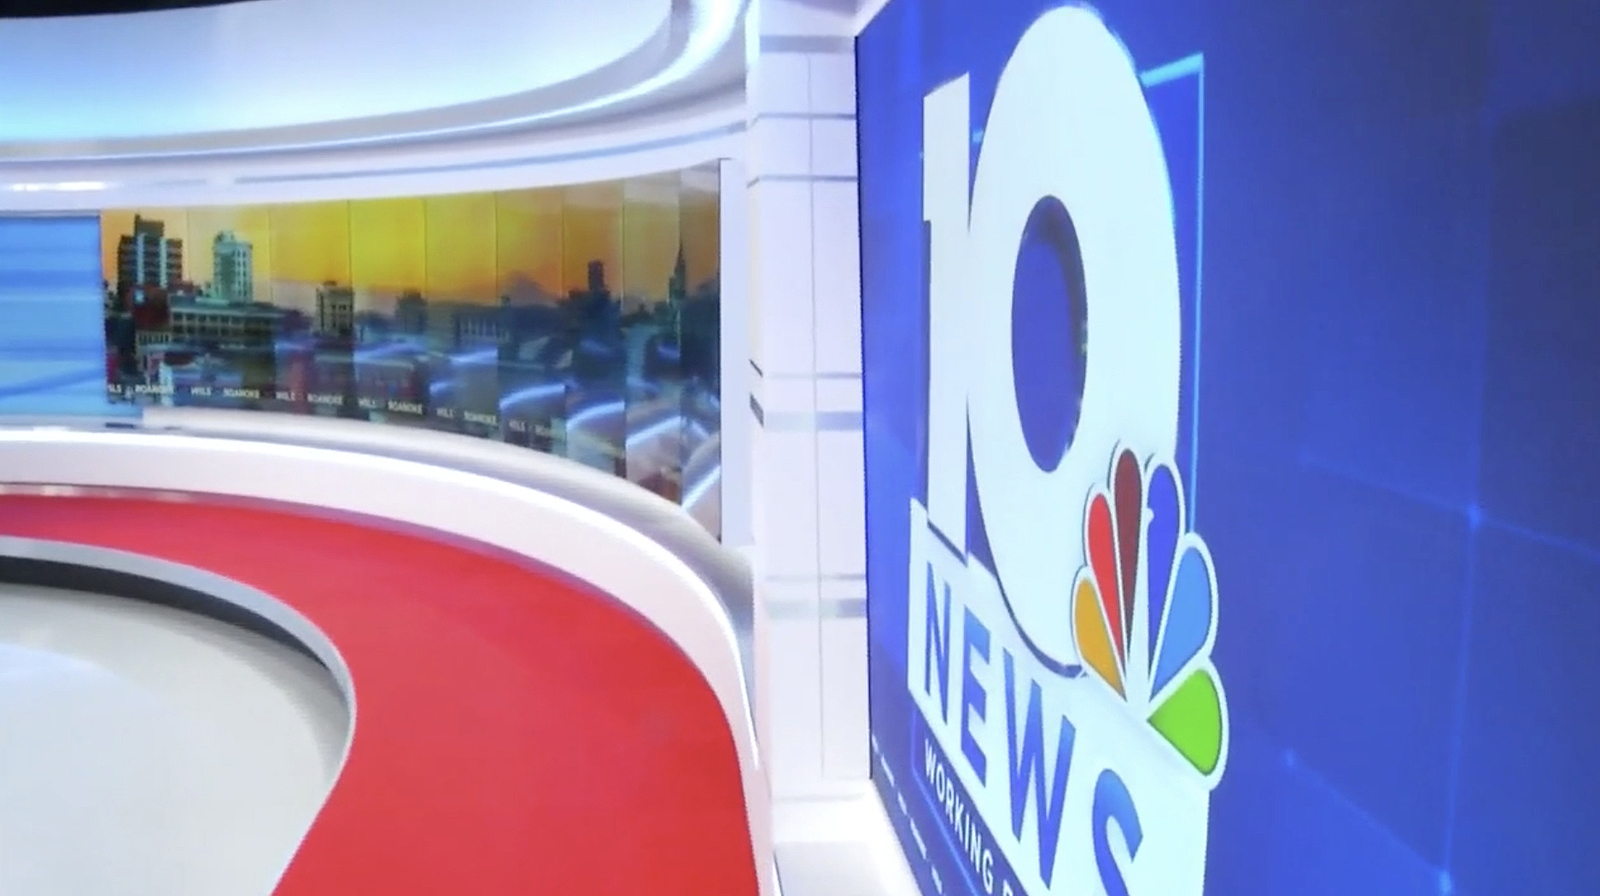 NCS_WSLS-10-News-studio_0060